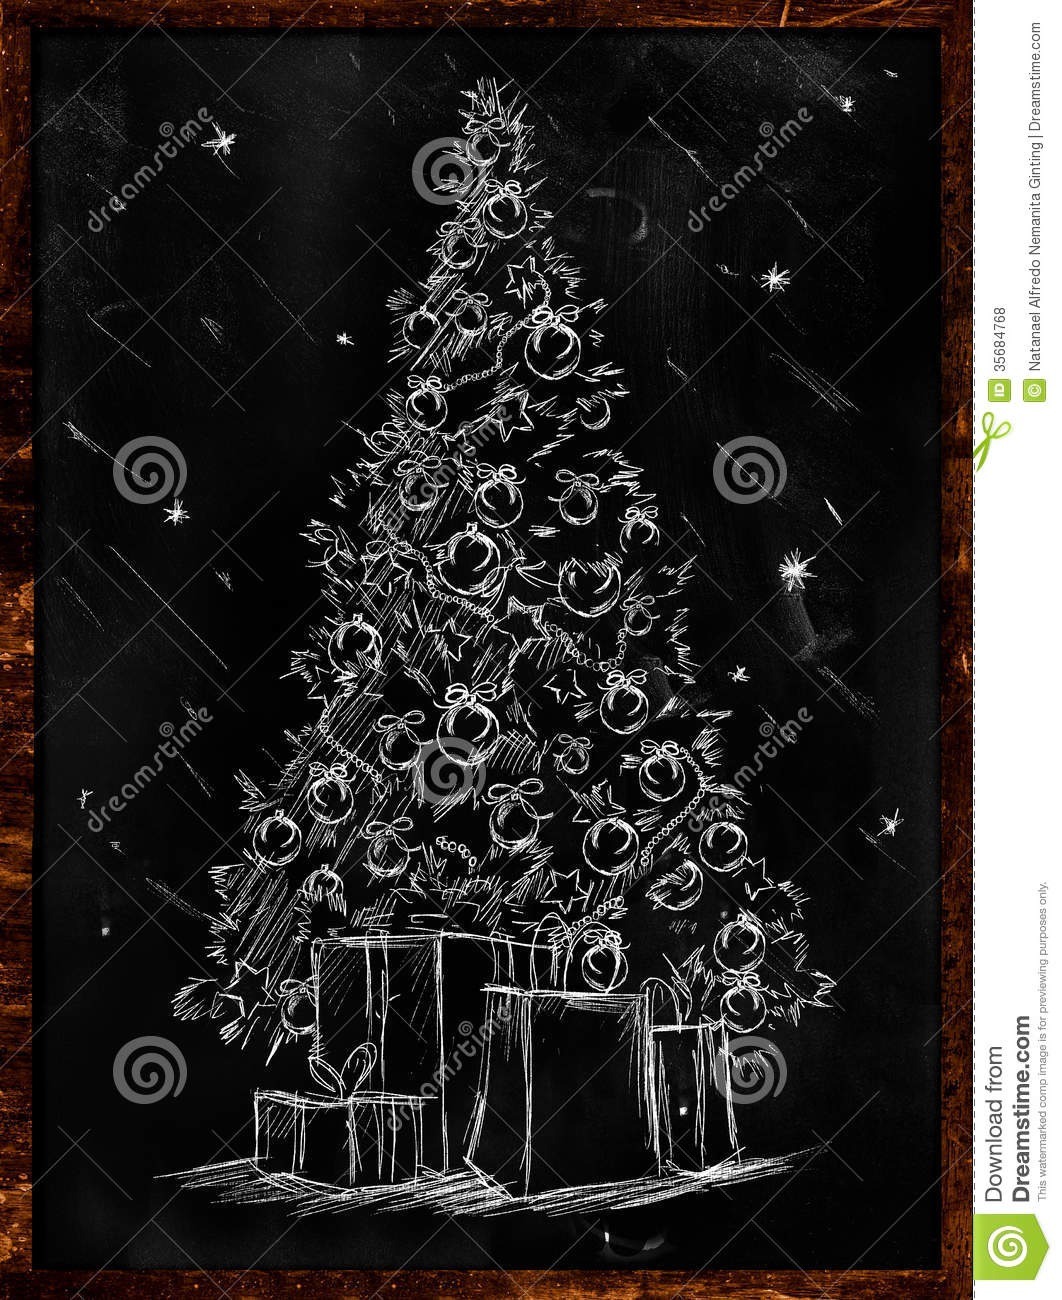 Christmas Tree Sketch Blackboard Wallpaper Holiday Ginting